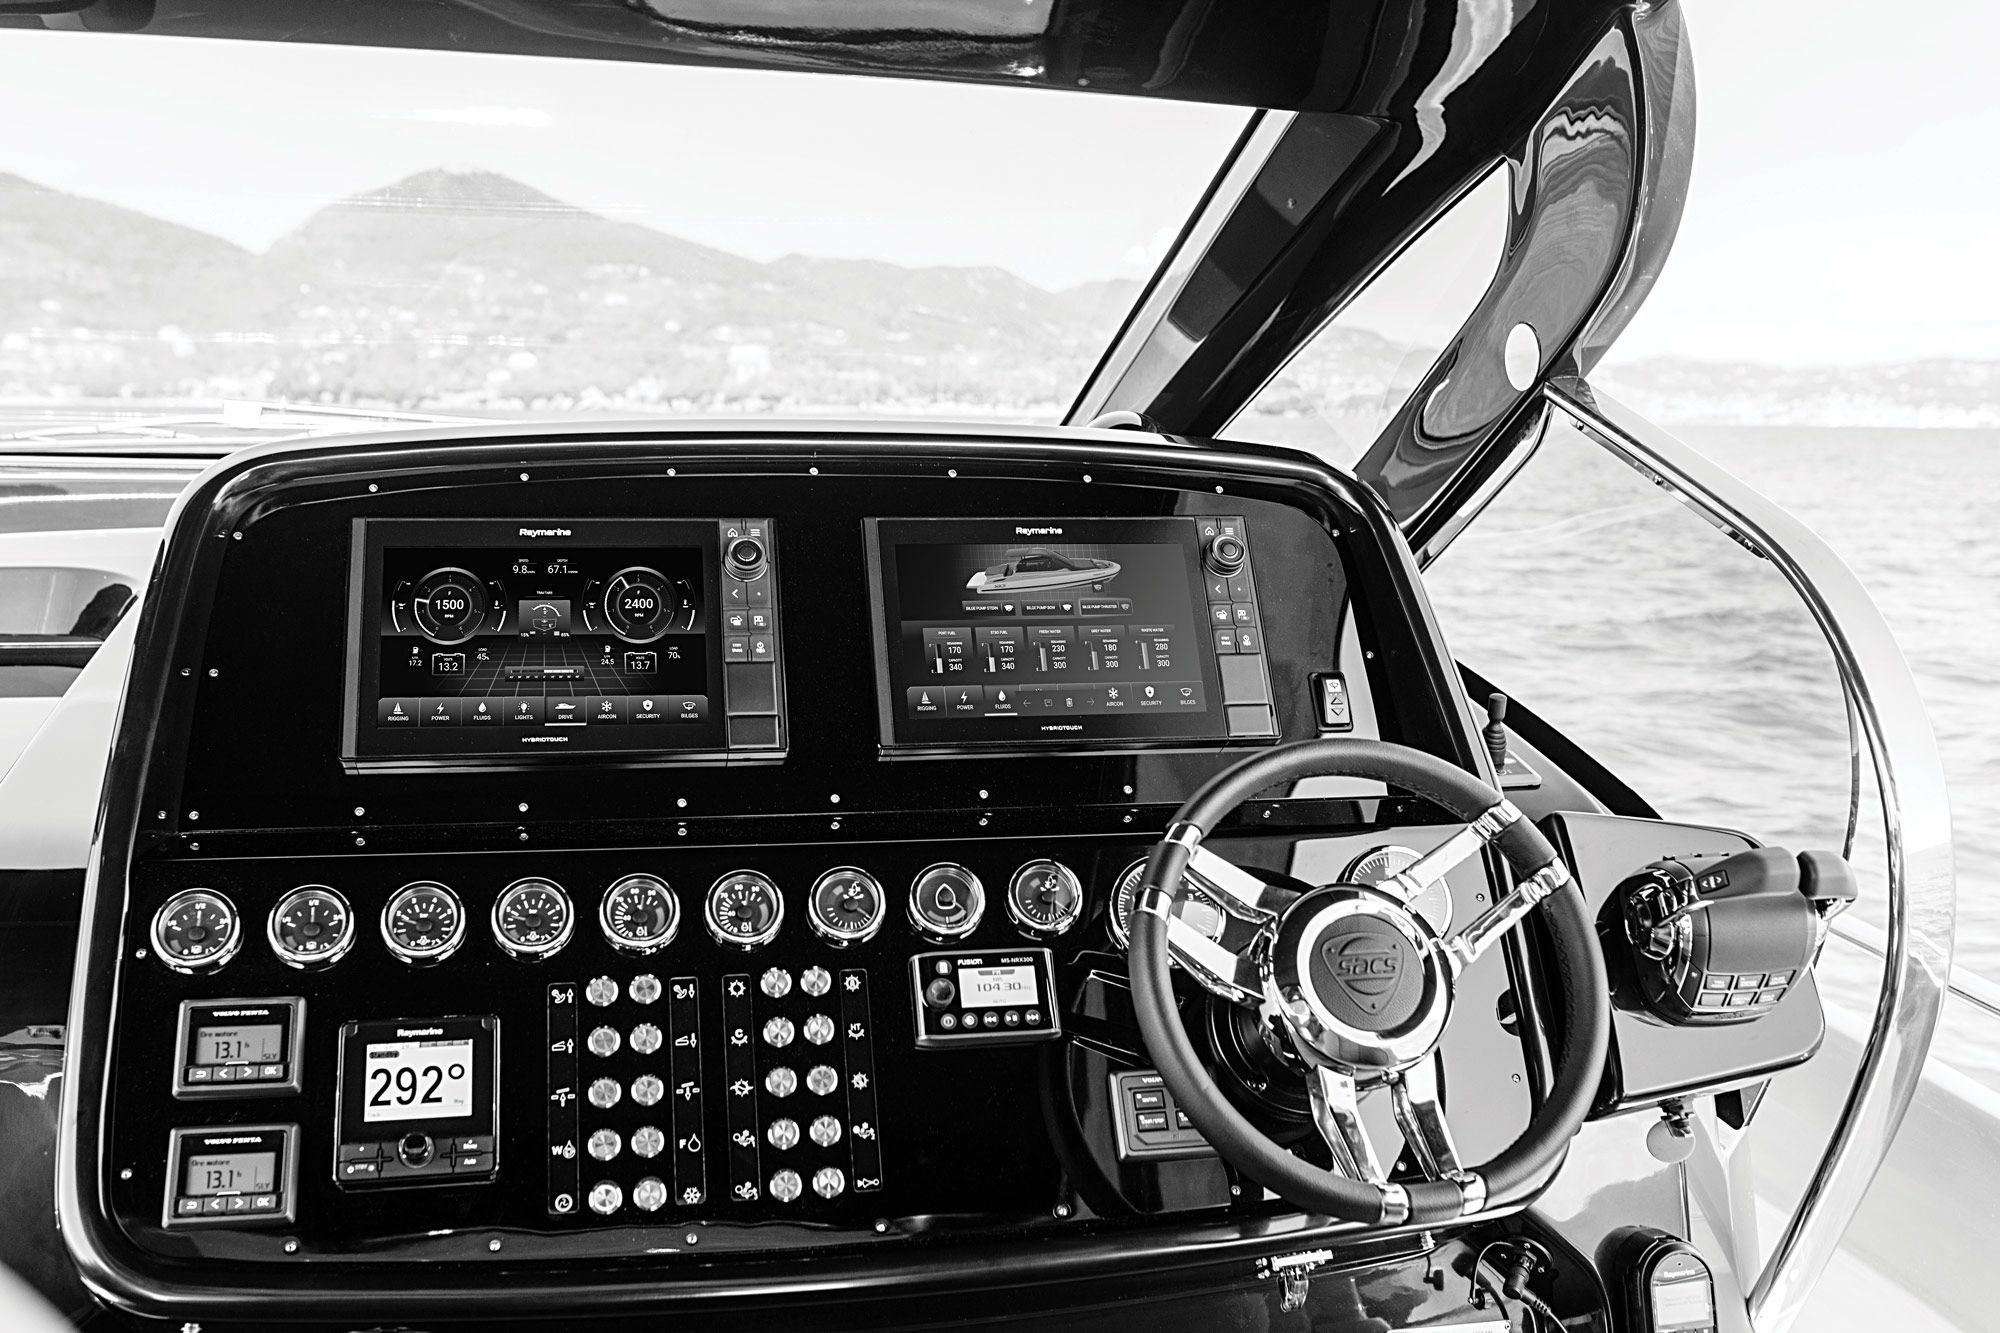 Raymarine's YachtSense offers adjustable levels of onboard digital control and automation.